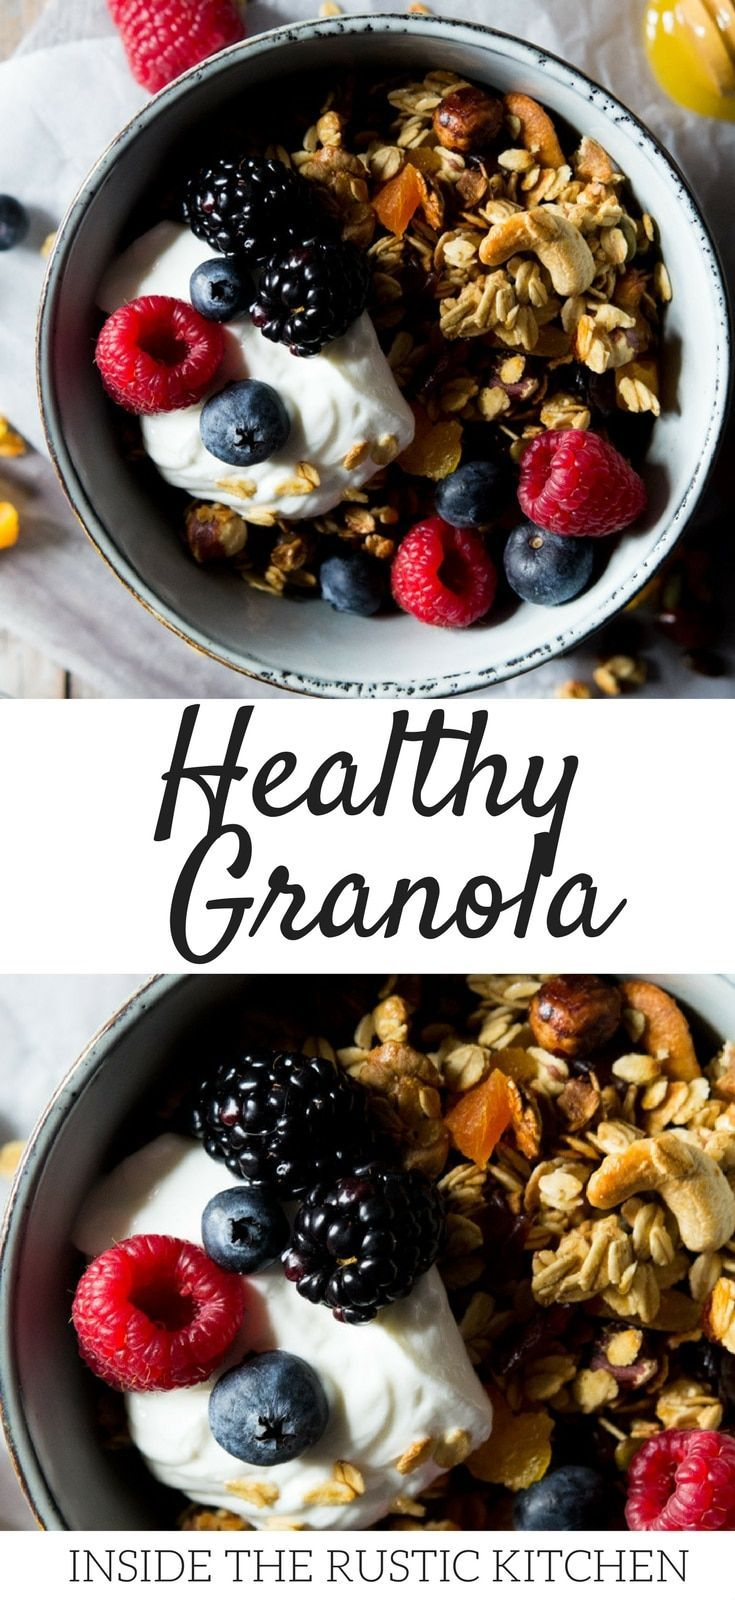 Easy healthy granola recipe. This simple homemade granola is made with honey nuts, seeds and dried fruit which you can adapt to make your very own favourite granola. It's so easy to make and will give you a whole batch for the week. Store in a tightly sealed container for up to 1 month. #granola #healthybreakfast #healthybreakfastrecipes #recipes #breakfast #easygranola #homemadegranola via @InsideTRK